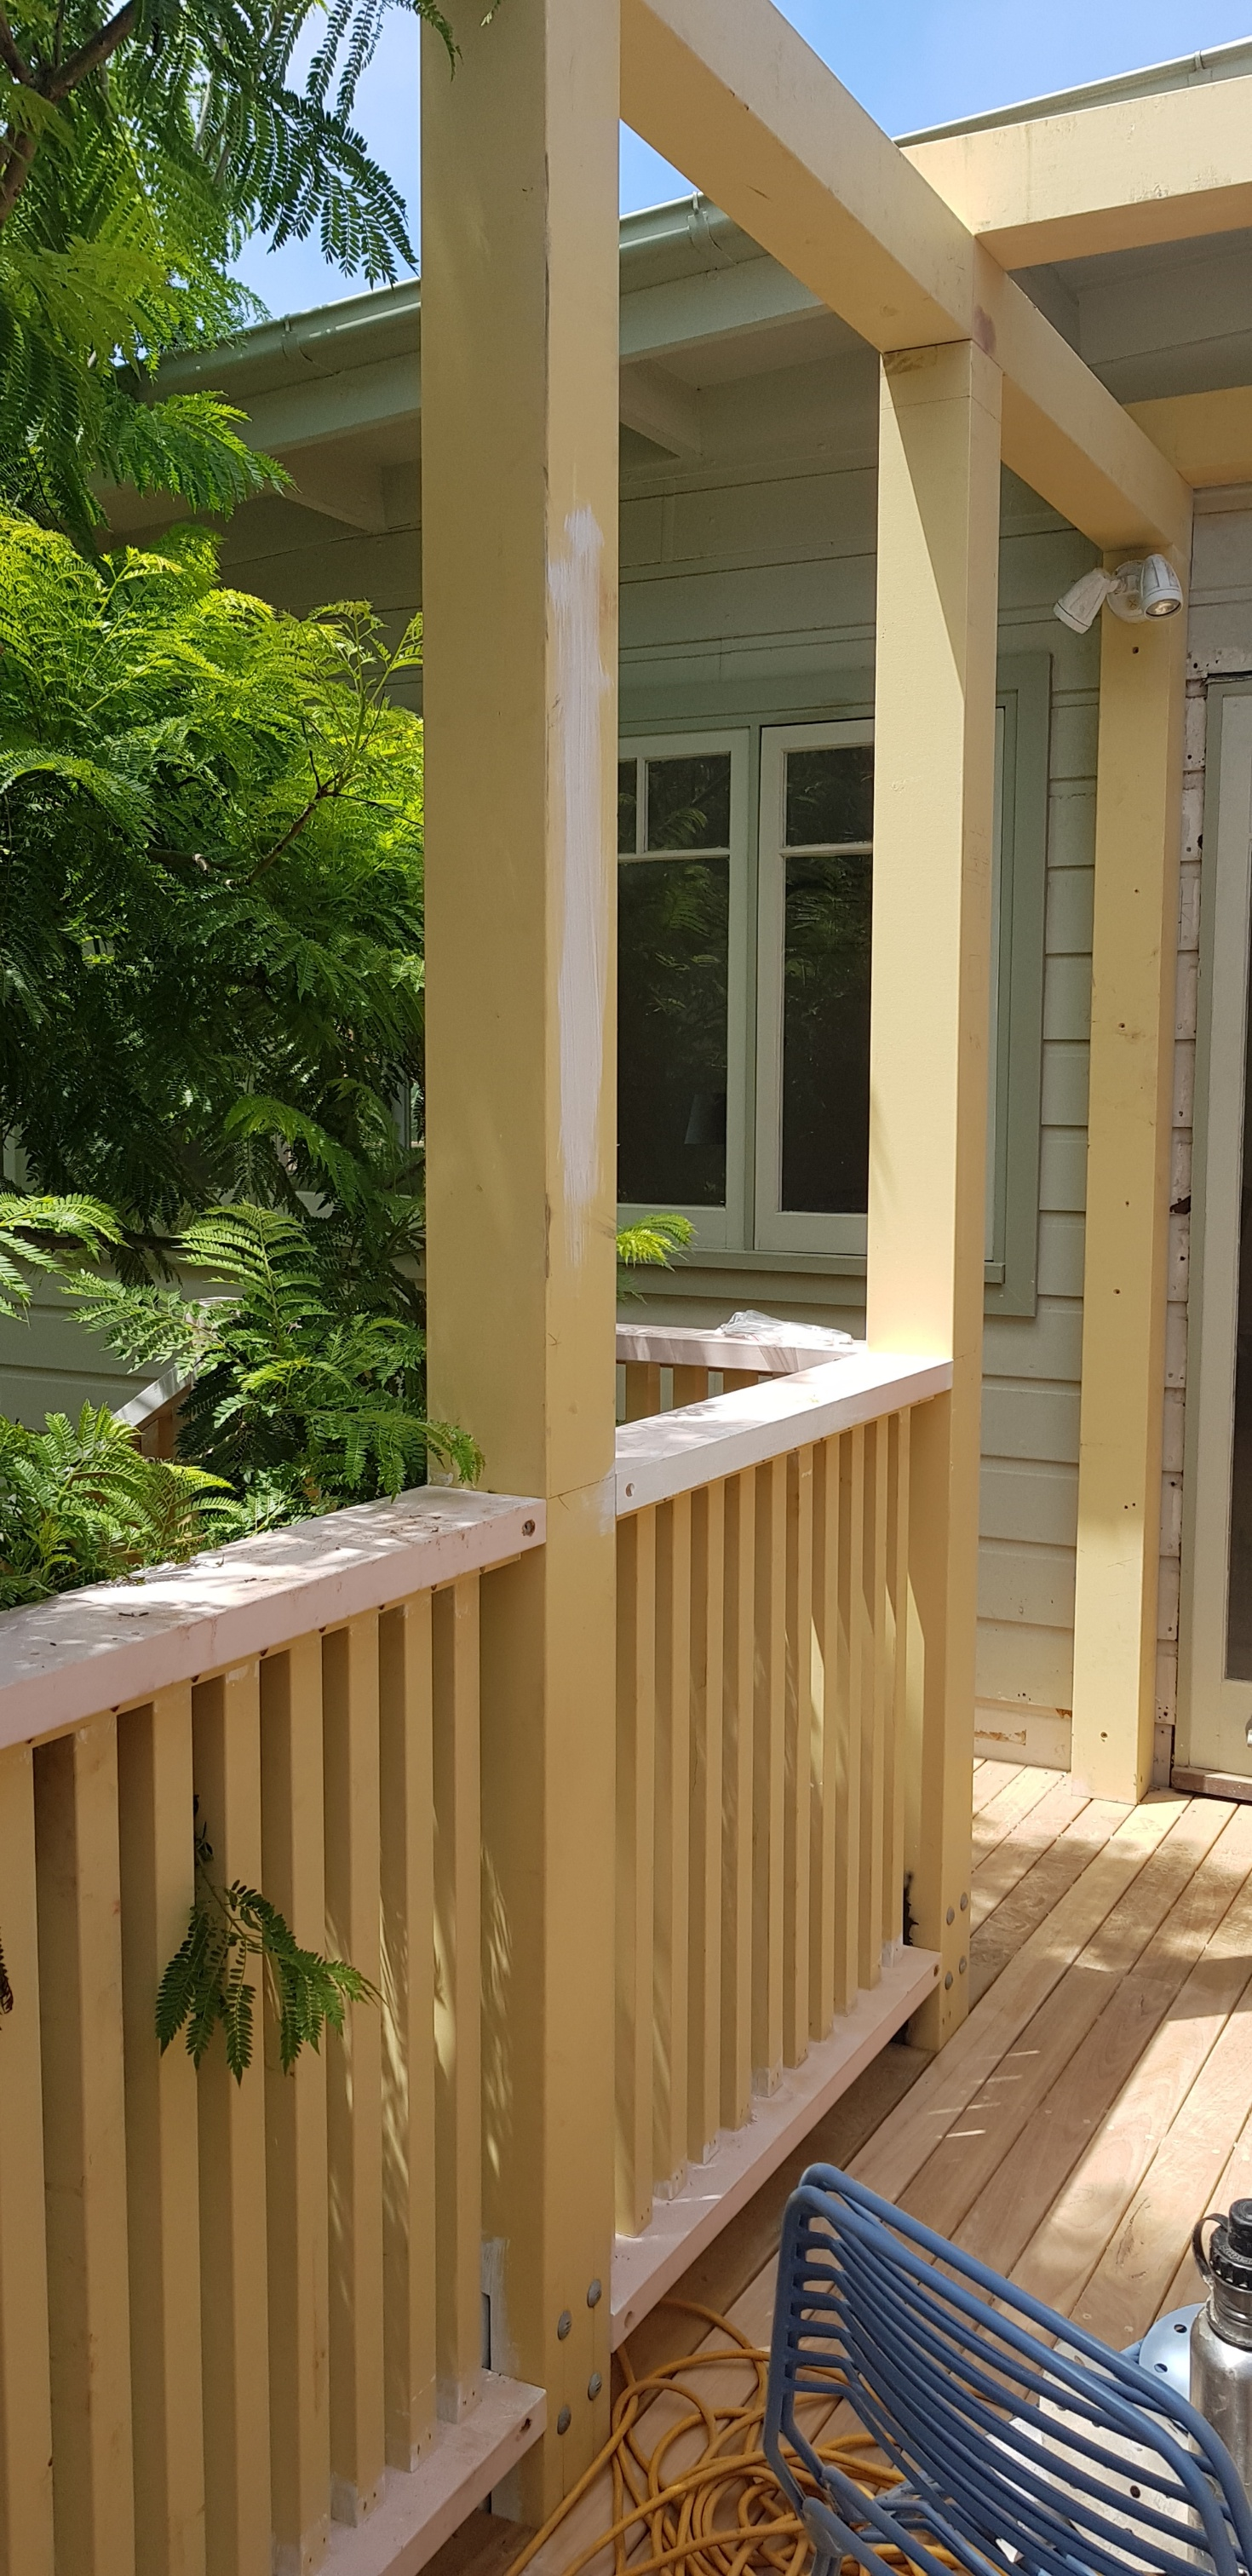 The pergola is to be painted a fresh white to contrast against the green landscaping.